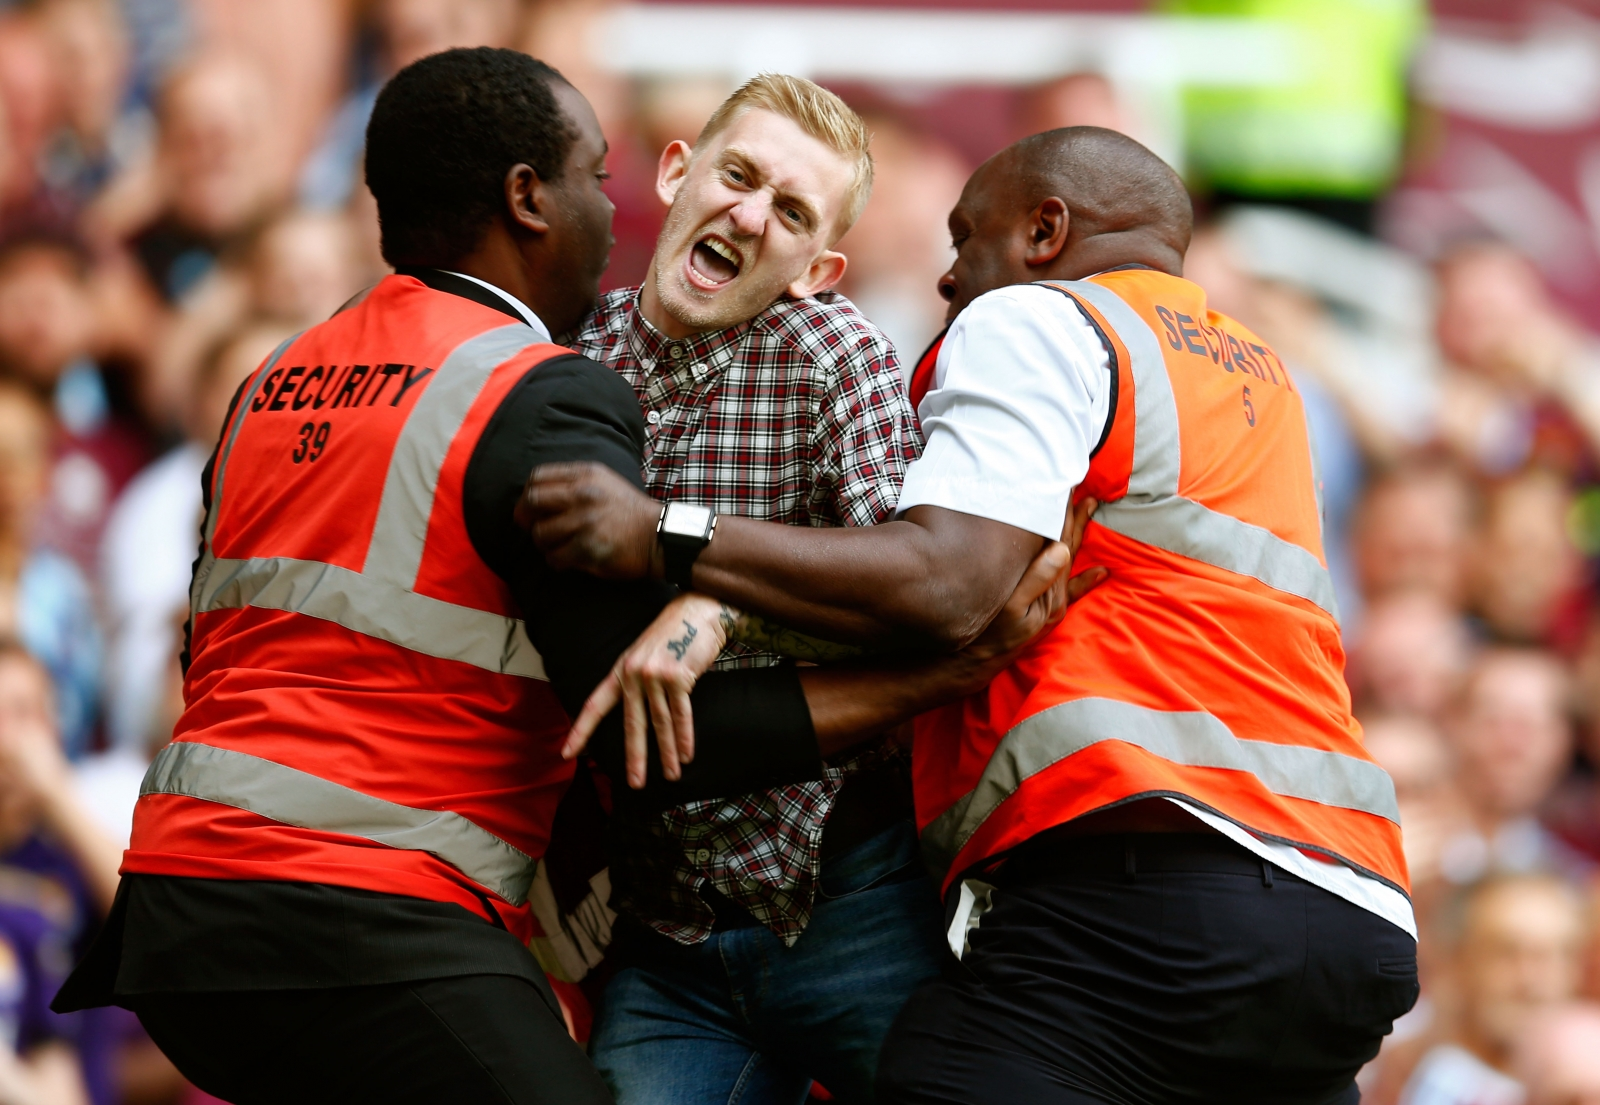 Pitch invader Jordan Dunn escapes life-time ban for taking free kick during West Ham vs Spurs